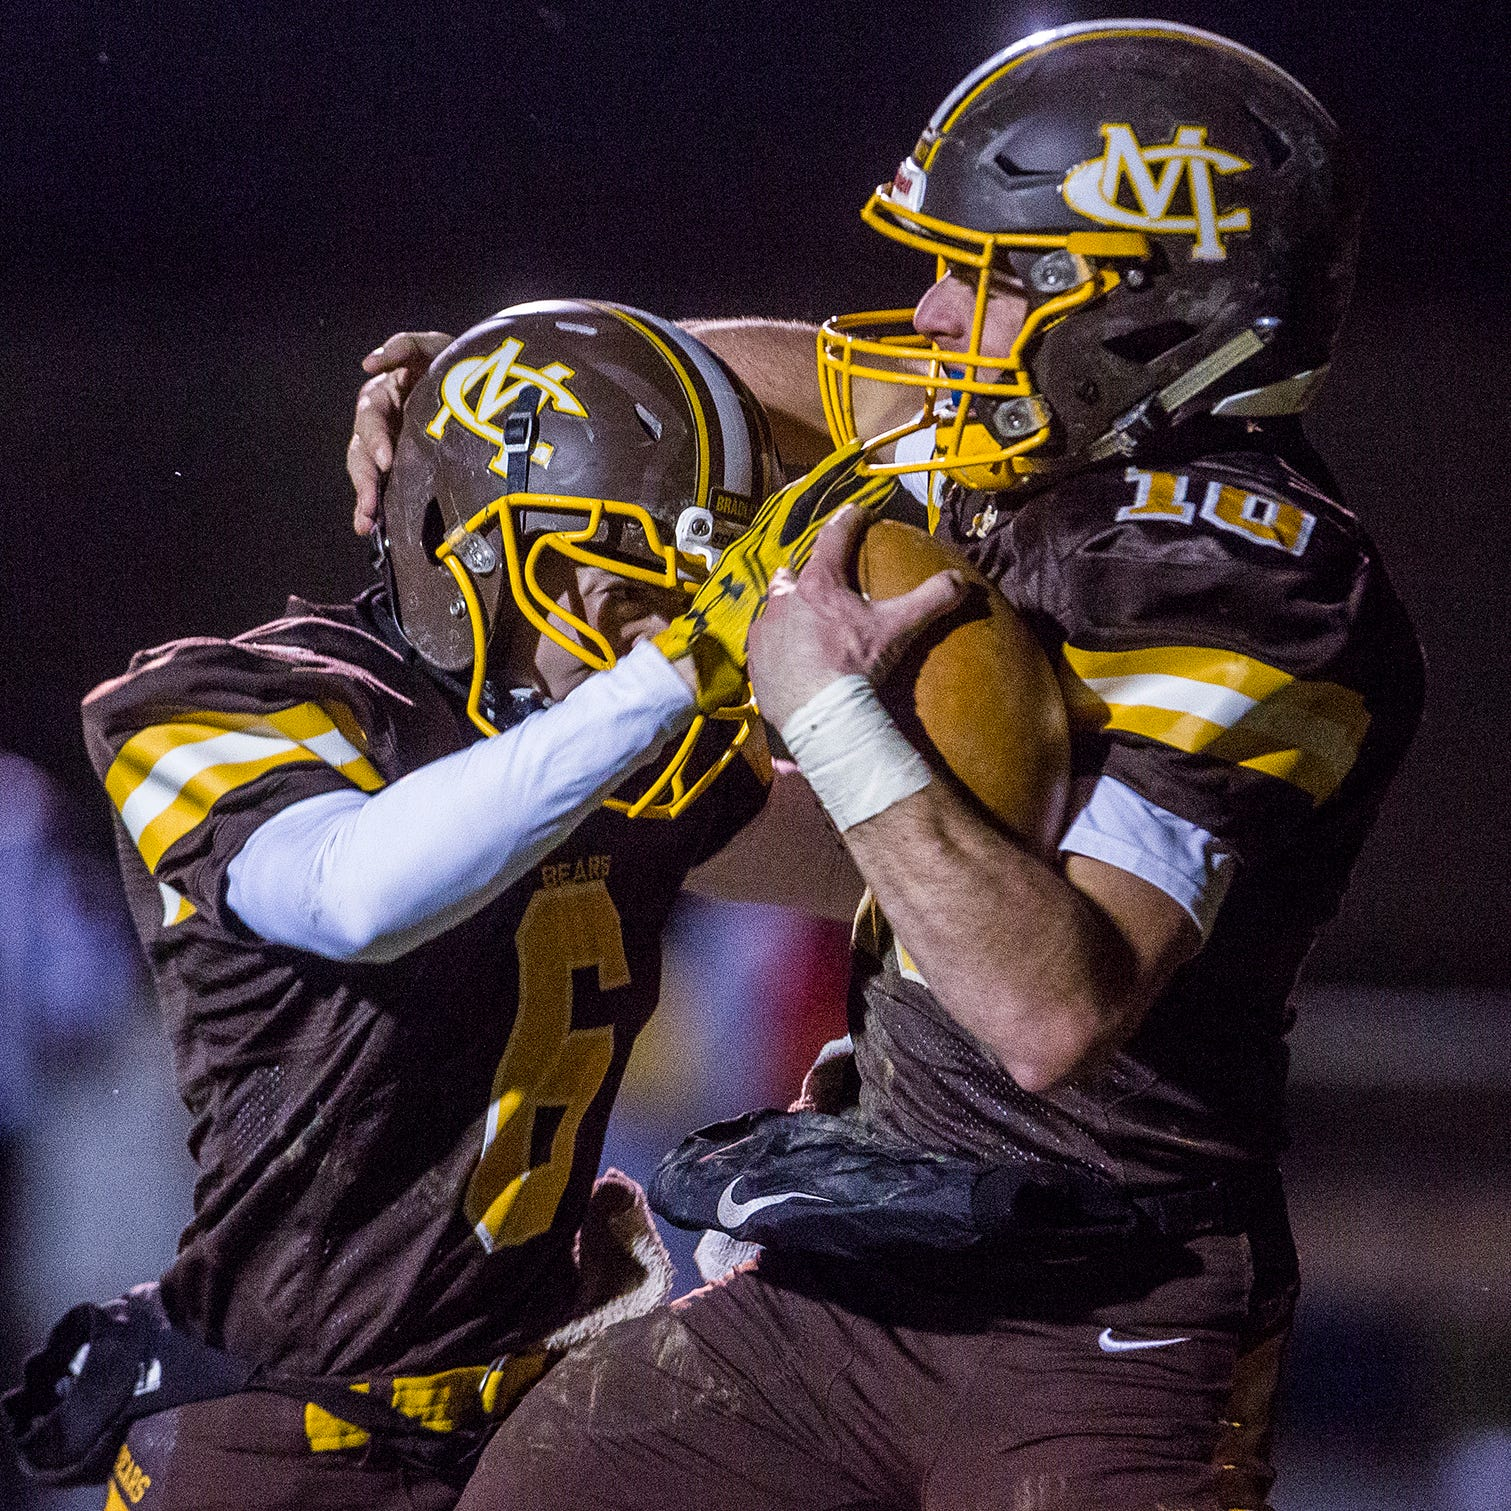 Monroe Central goes down fighting in regional loss to Adams Central